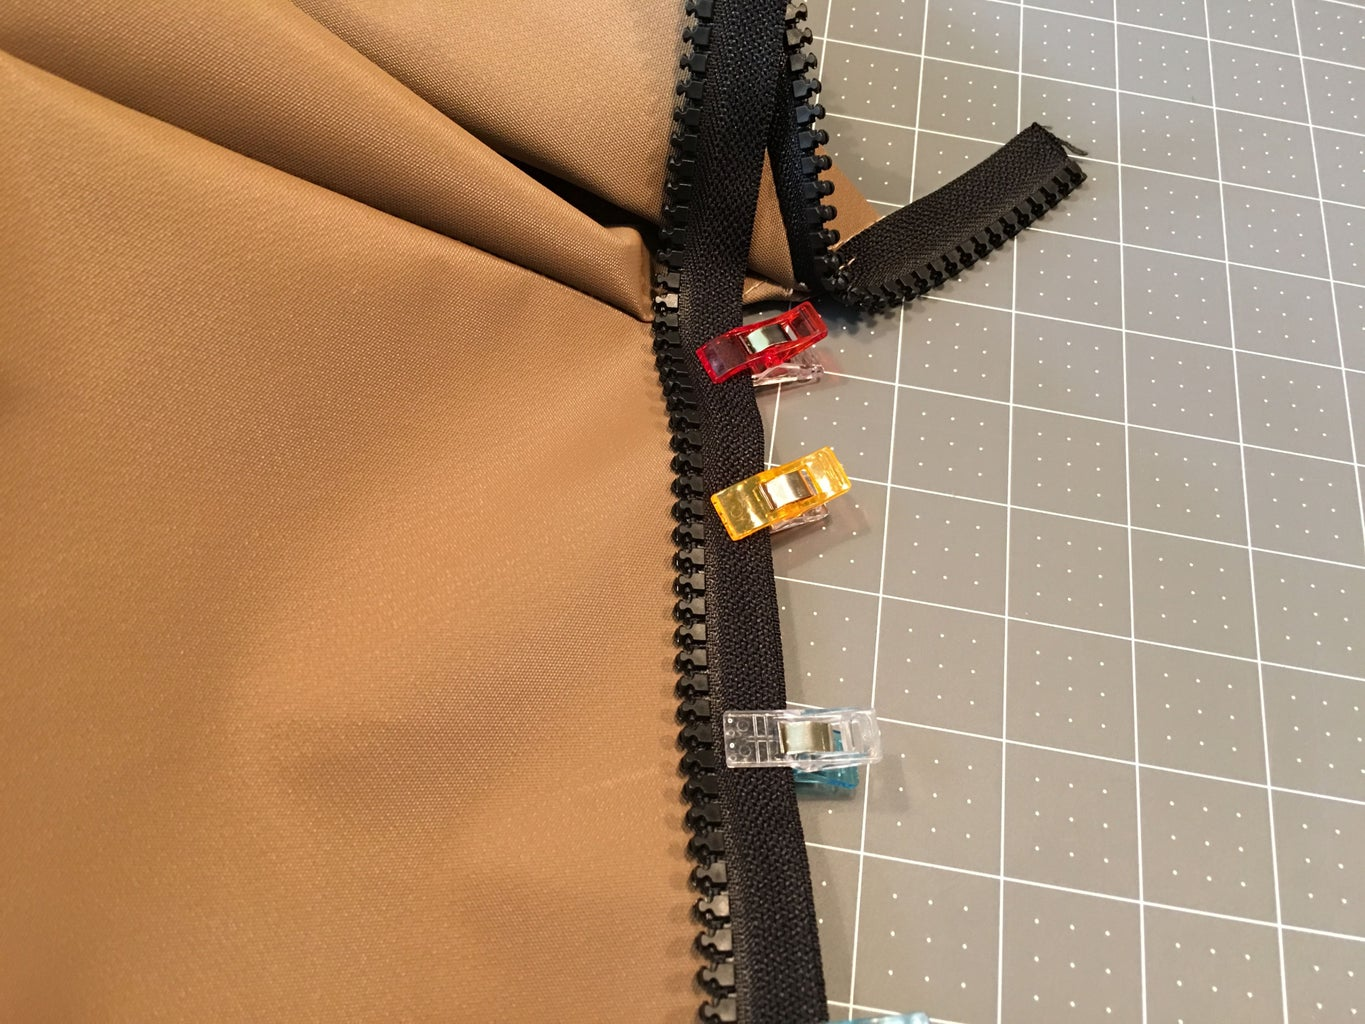 Sewing the Bottom Teeth of the Zipper to the Bag: